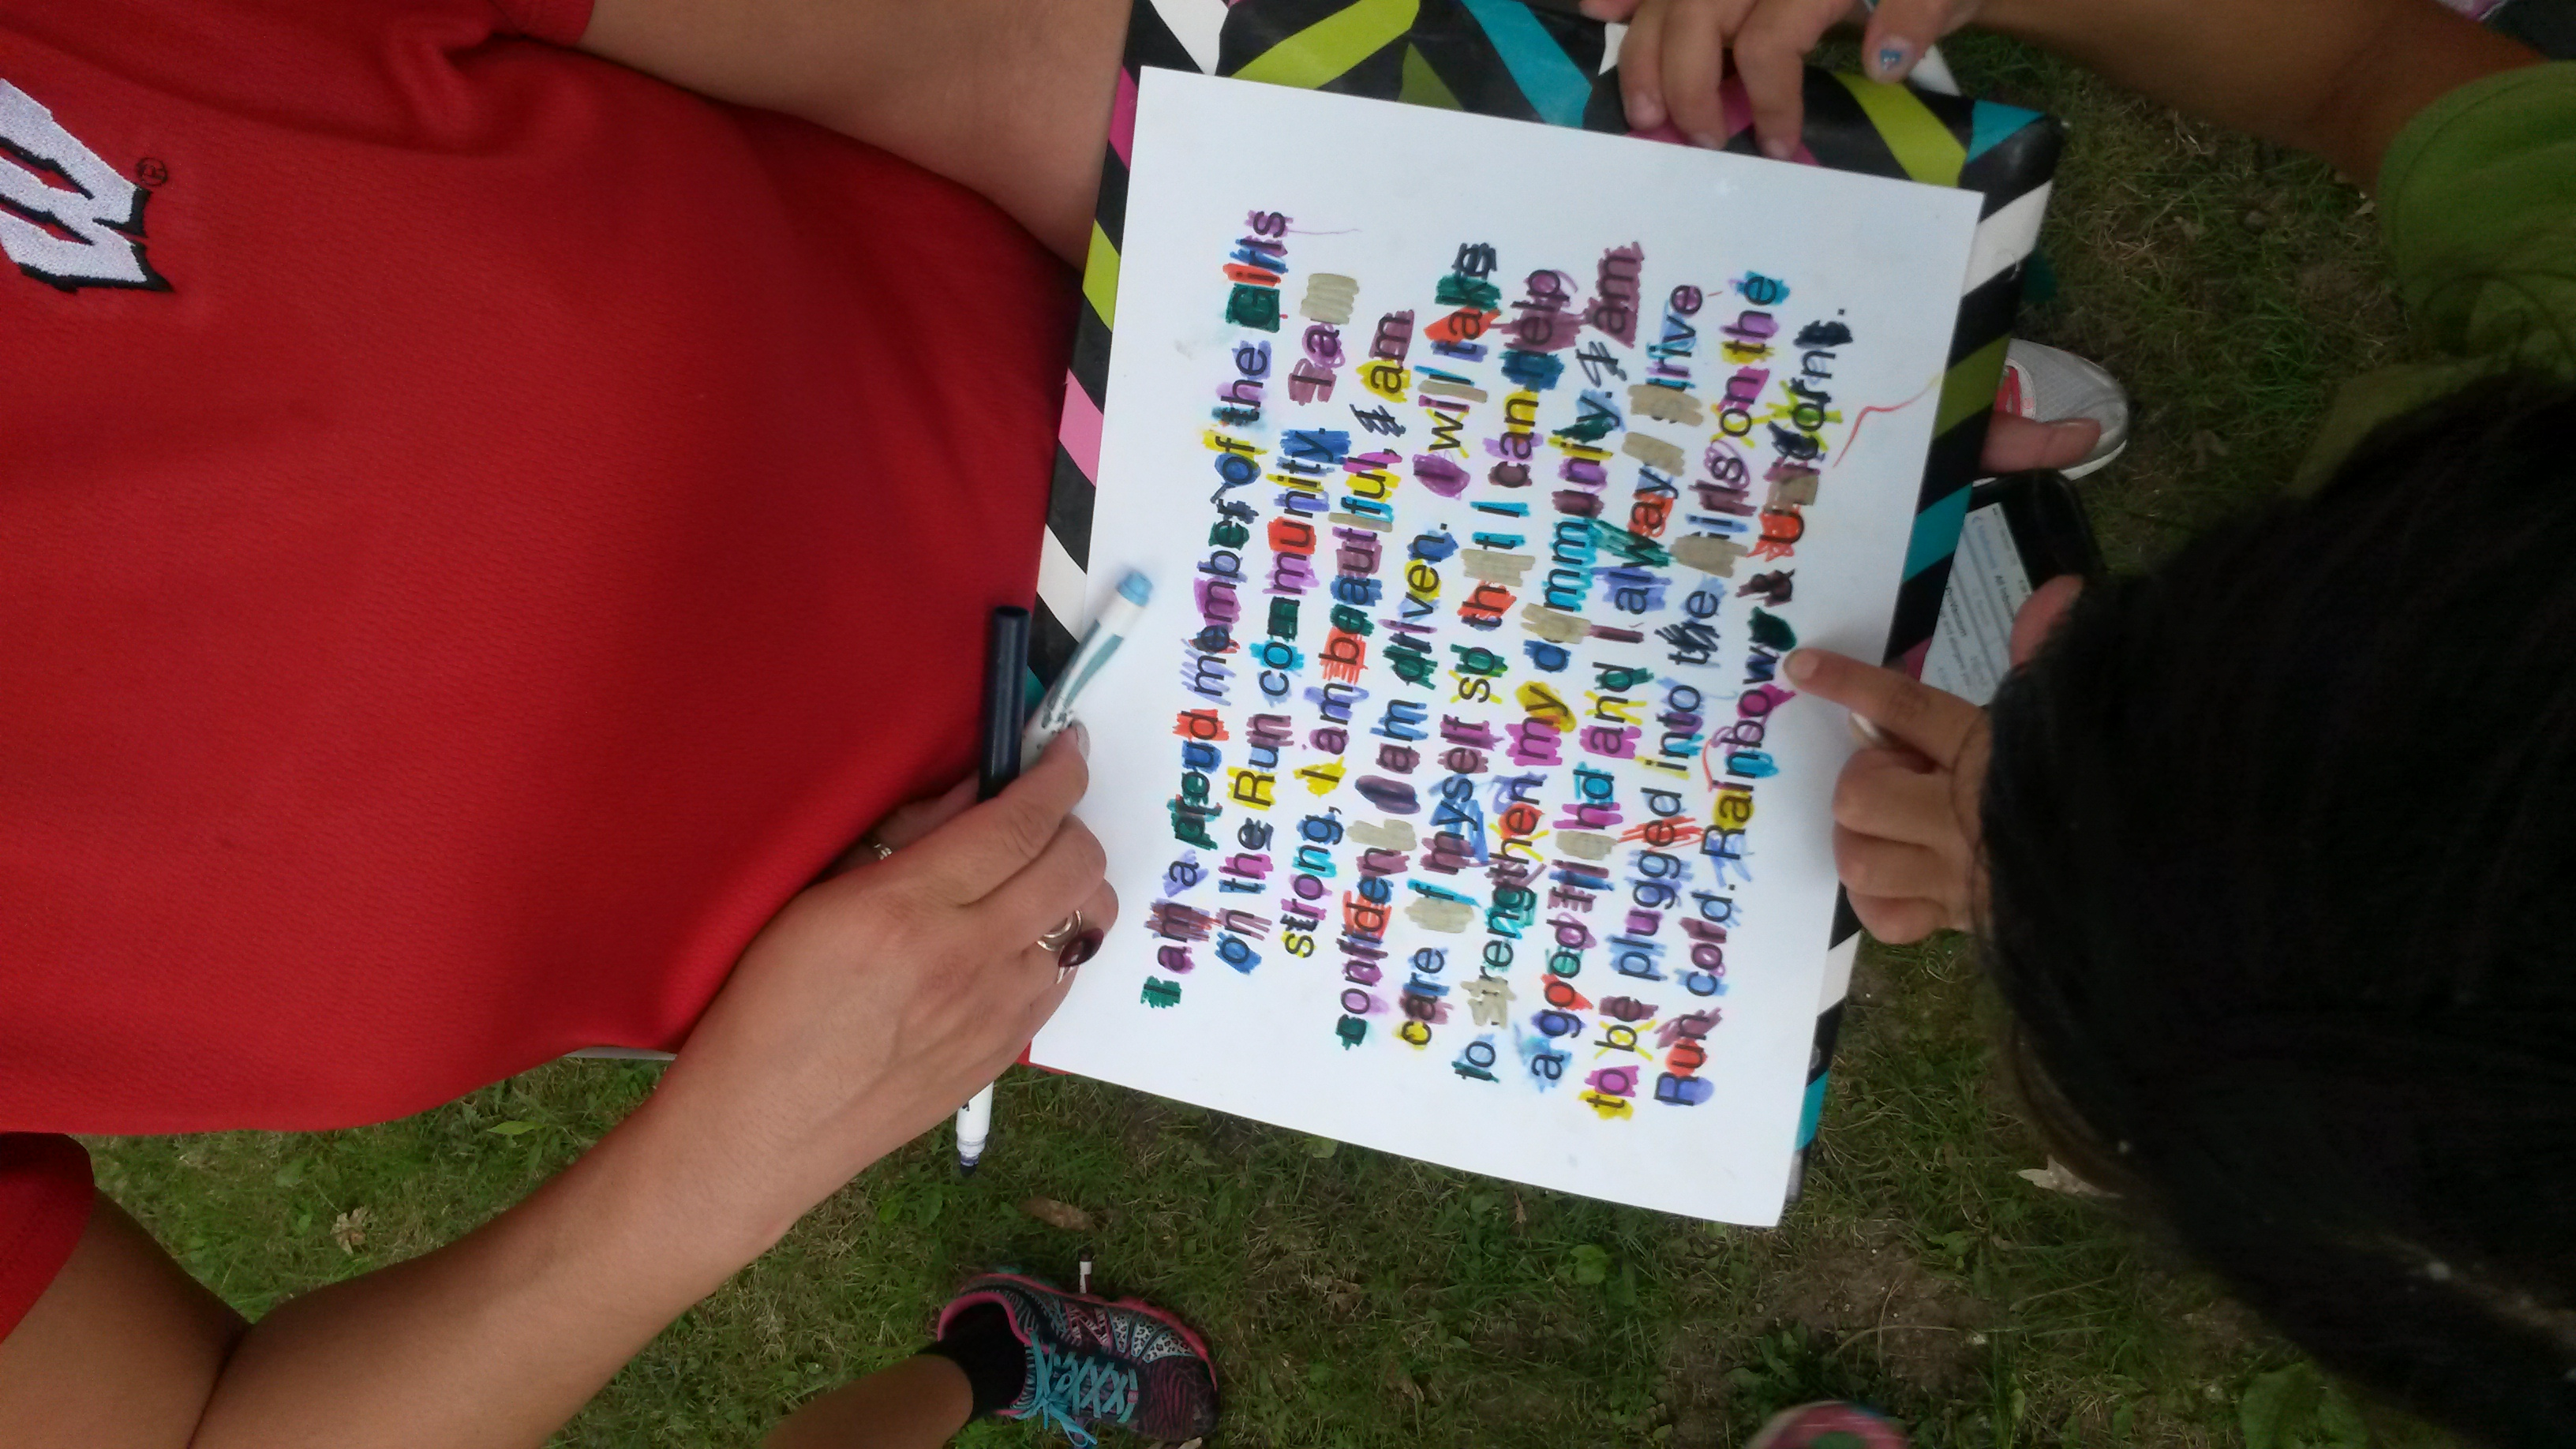 GIrls on the Run coach Meredith Rhodes Carson, a health coach with From This Day Forward Health Coaching, uses a message to help girls complete about 224 laps around a school yard. For every lap they completed they crossed off a letter in the statement.